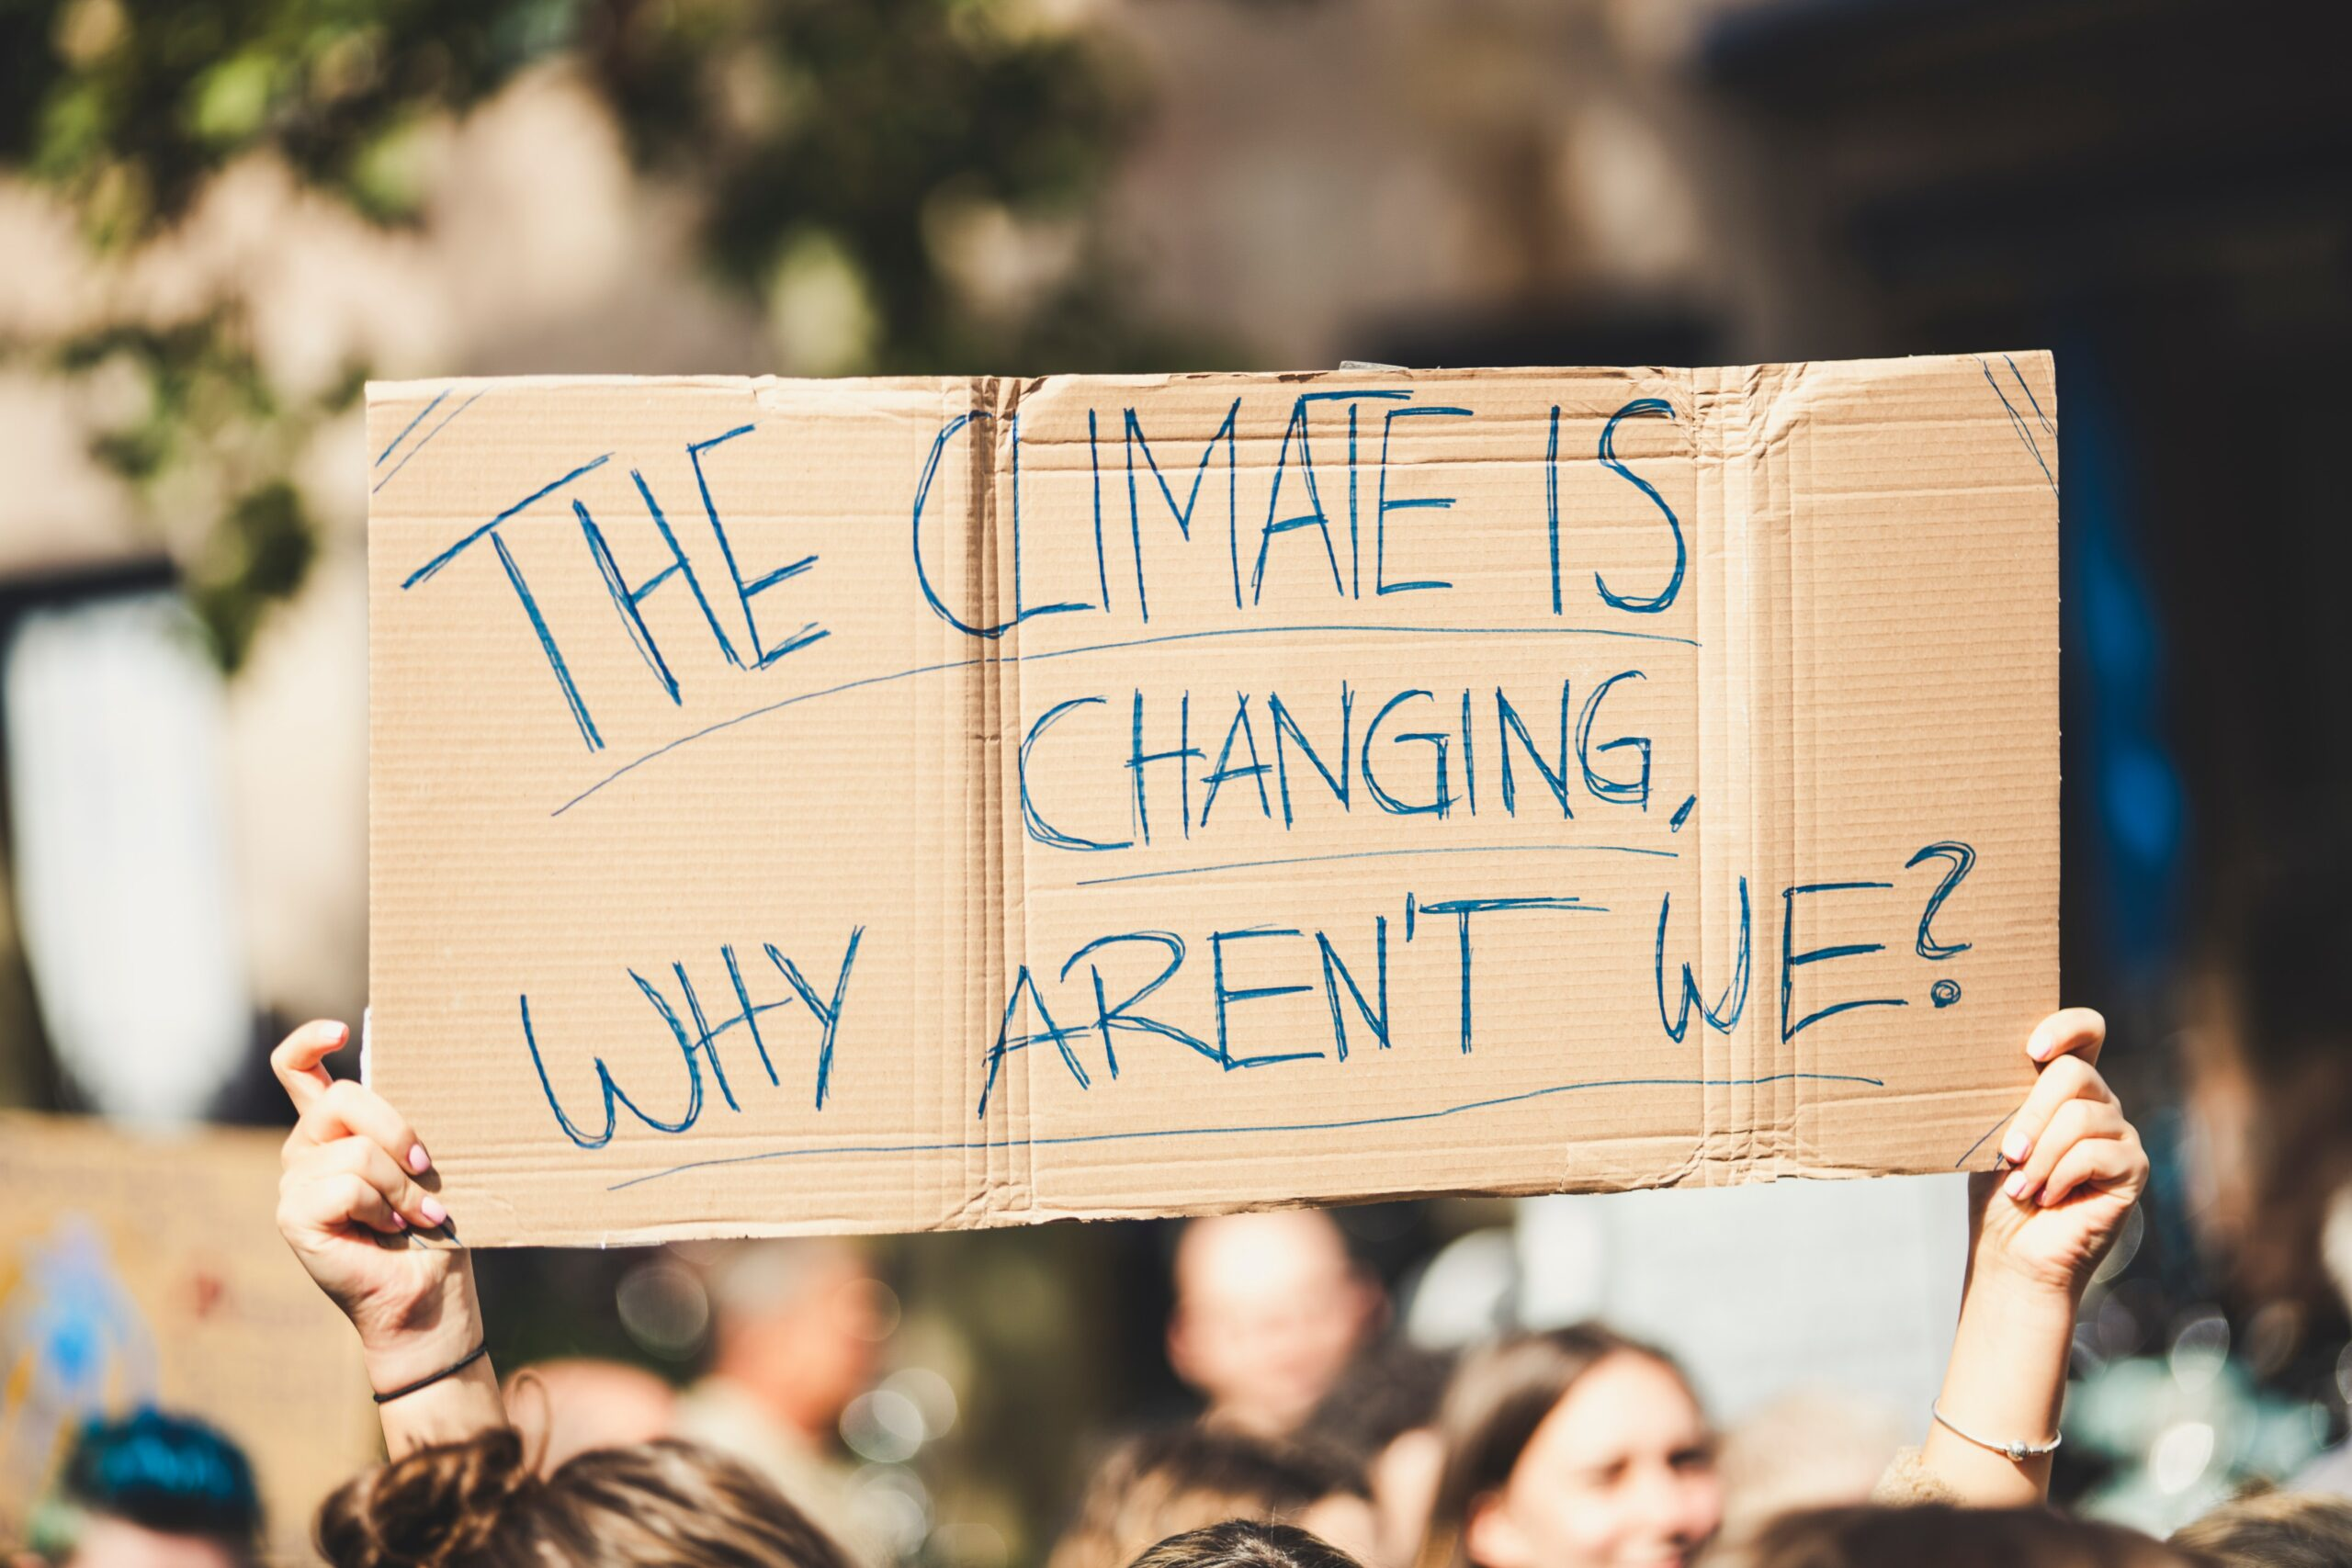 The climate is changing - why aren't we?